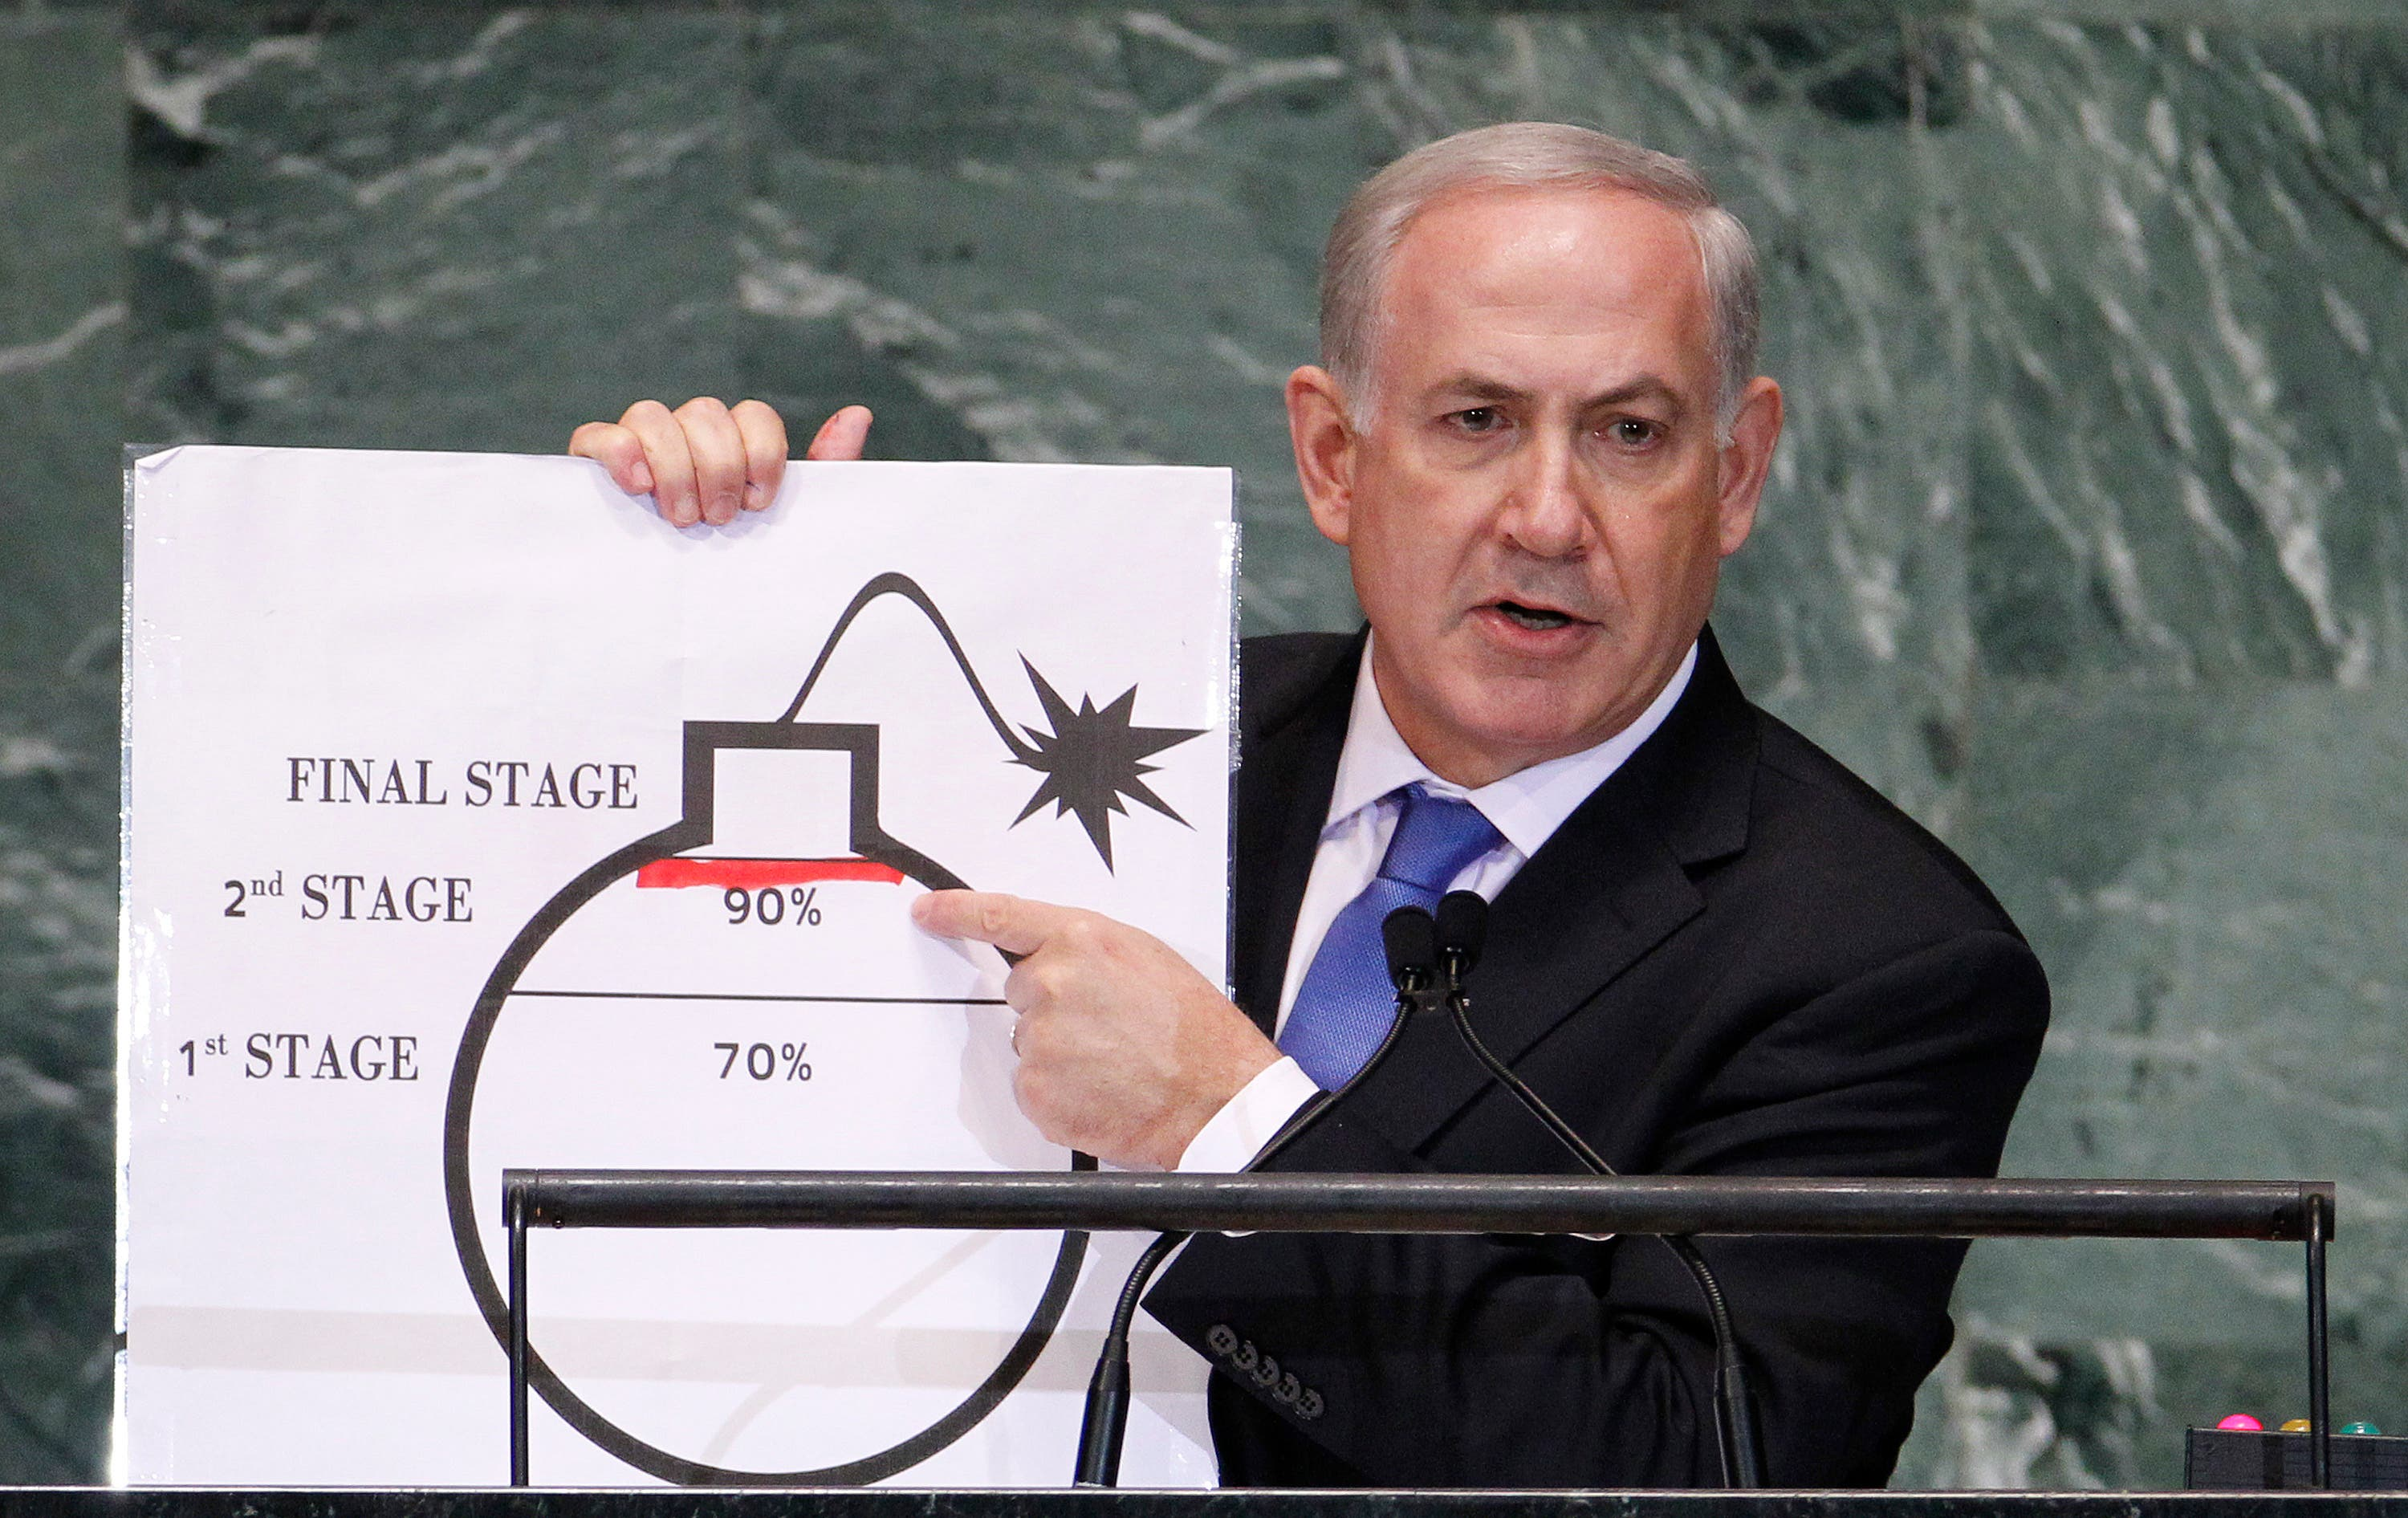 Israel's Prime Minister Benjamin Netanyahu points to a red line he has drawn on the graphic of a bomb as he addresses the 67th United Nations General Assembly at the U.N. Headquarters in New York, Sept. 27, 2012. (Reuters)